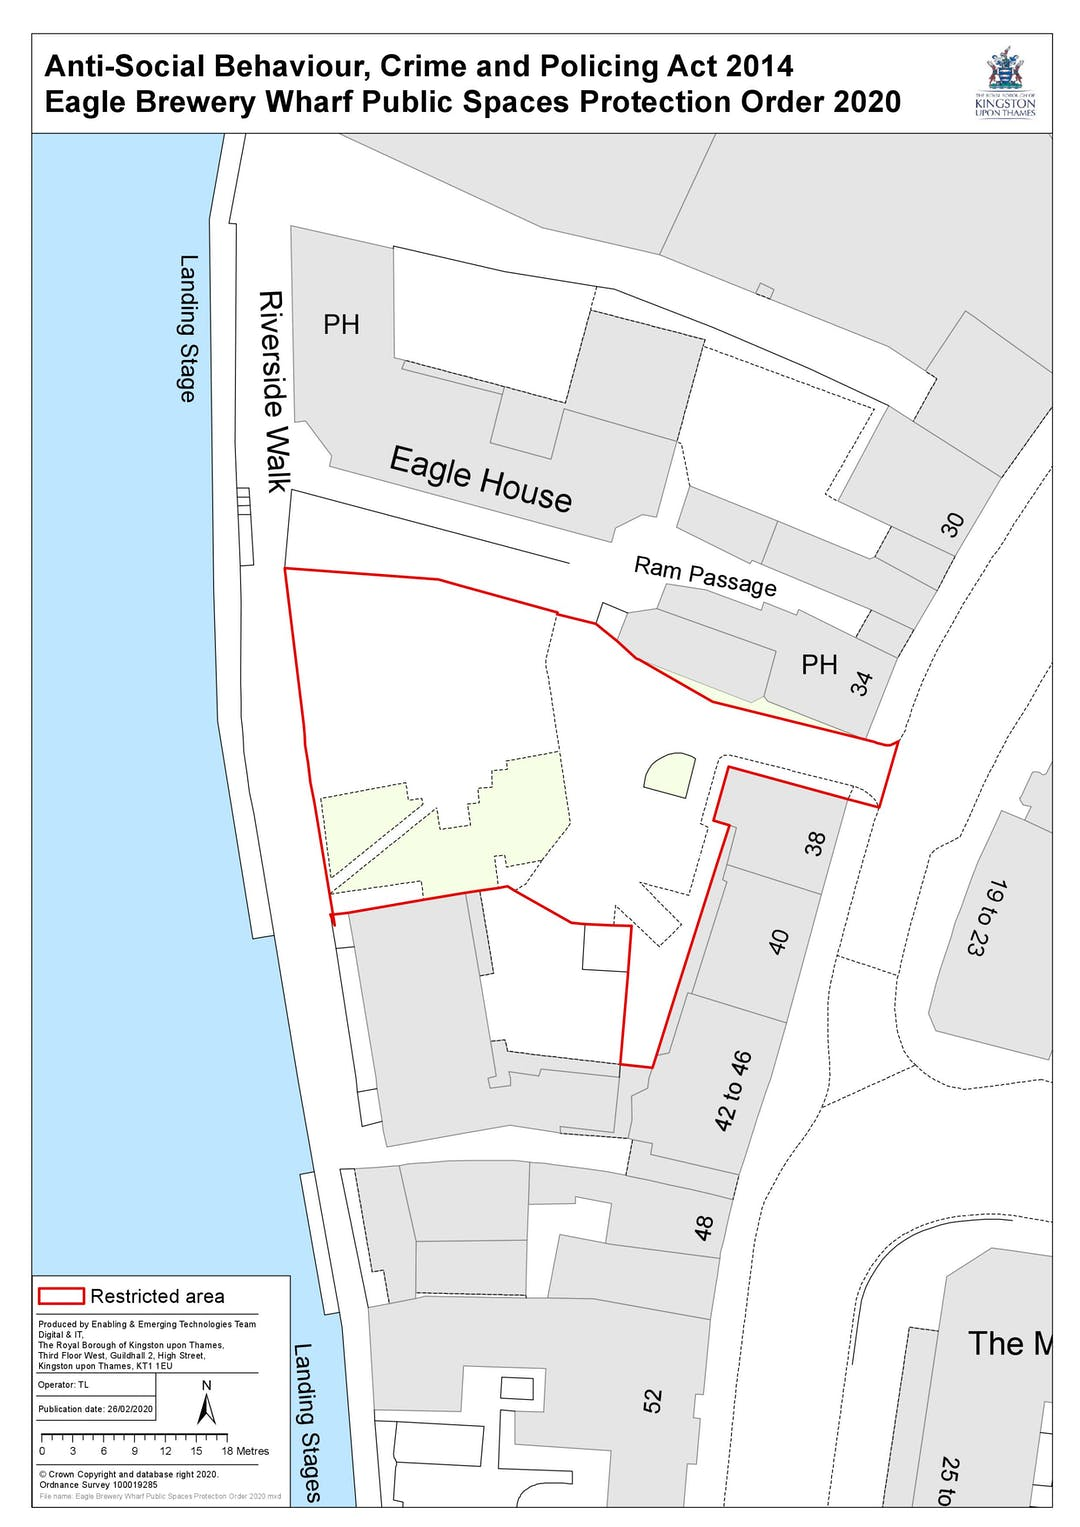 A map of the proposed area for the PSPO. This covers Eagle Brewery Wharf Open Space, an area surrounded by residential and business premises between Riverside Walk and High Street, Kingston upon Thames, KT1.